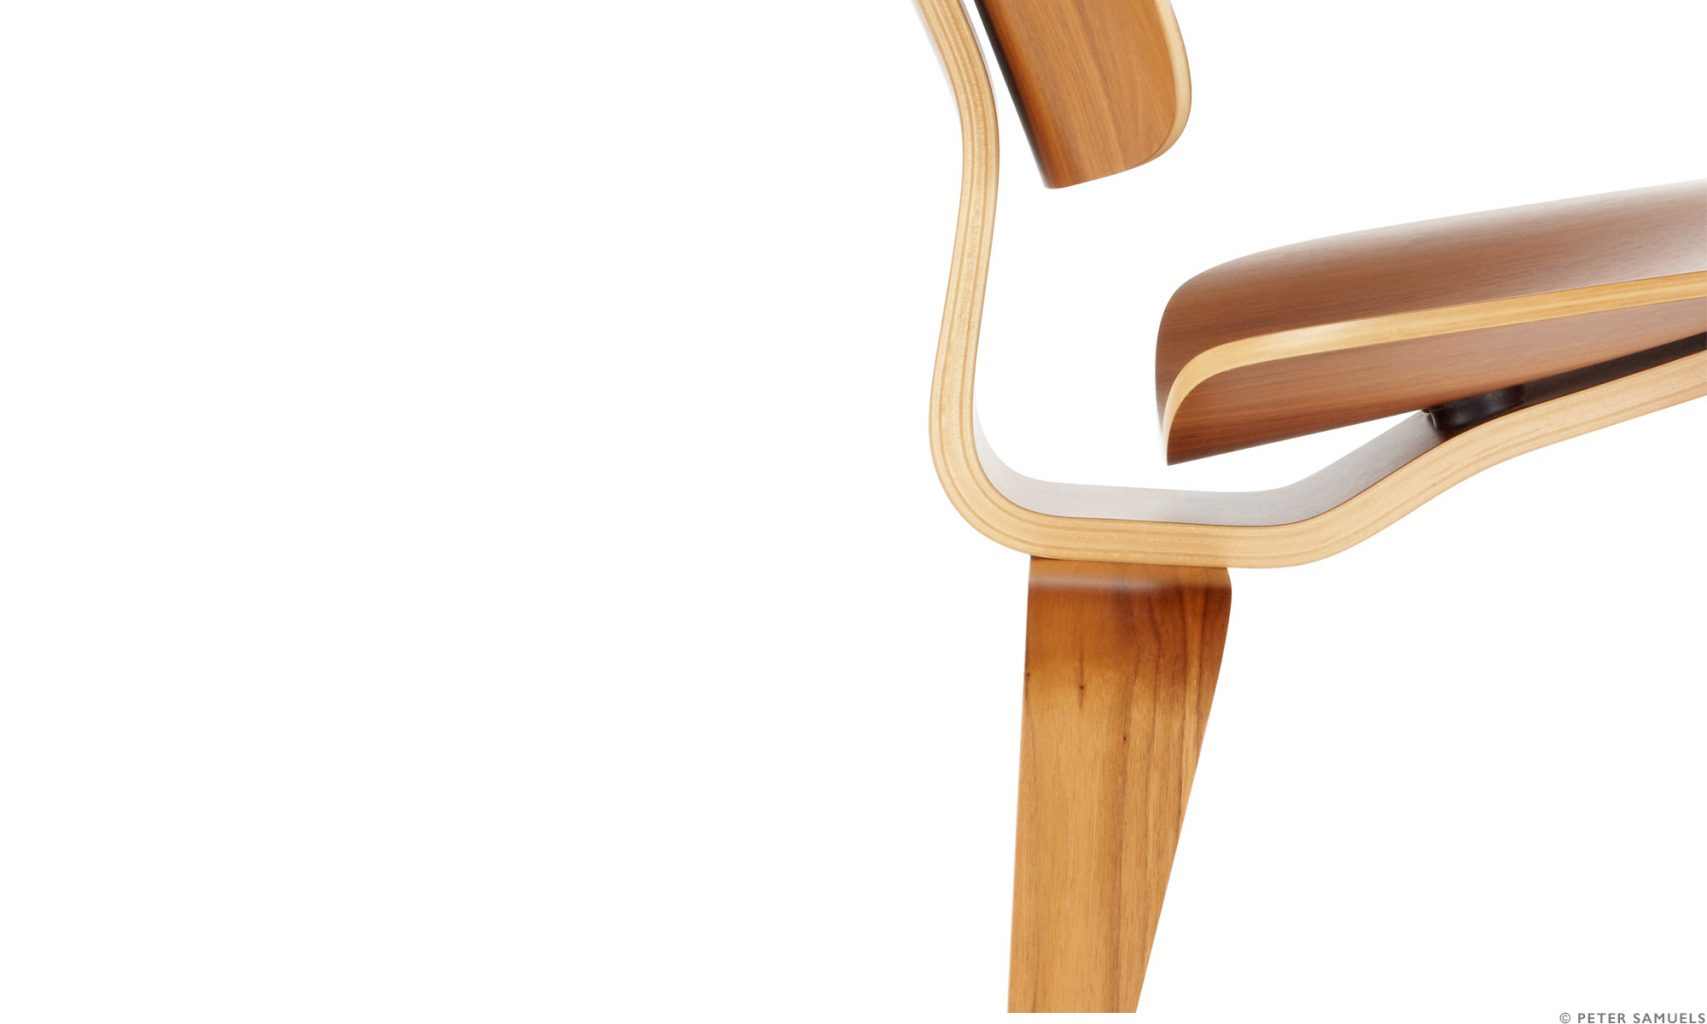 Eames chair product photography test.